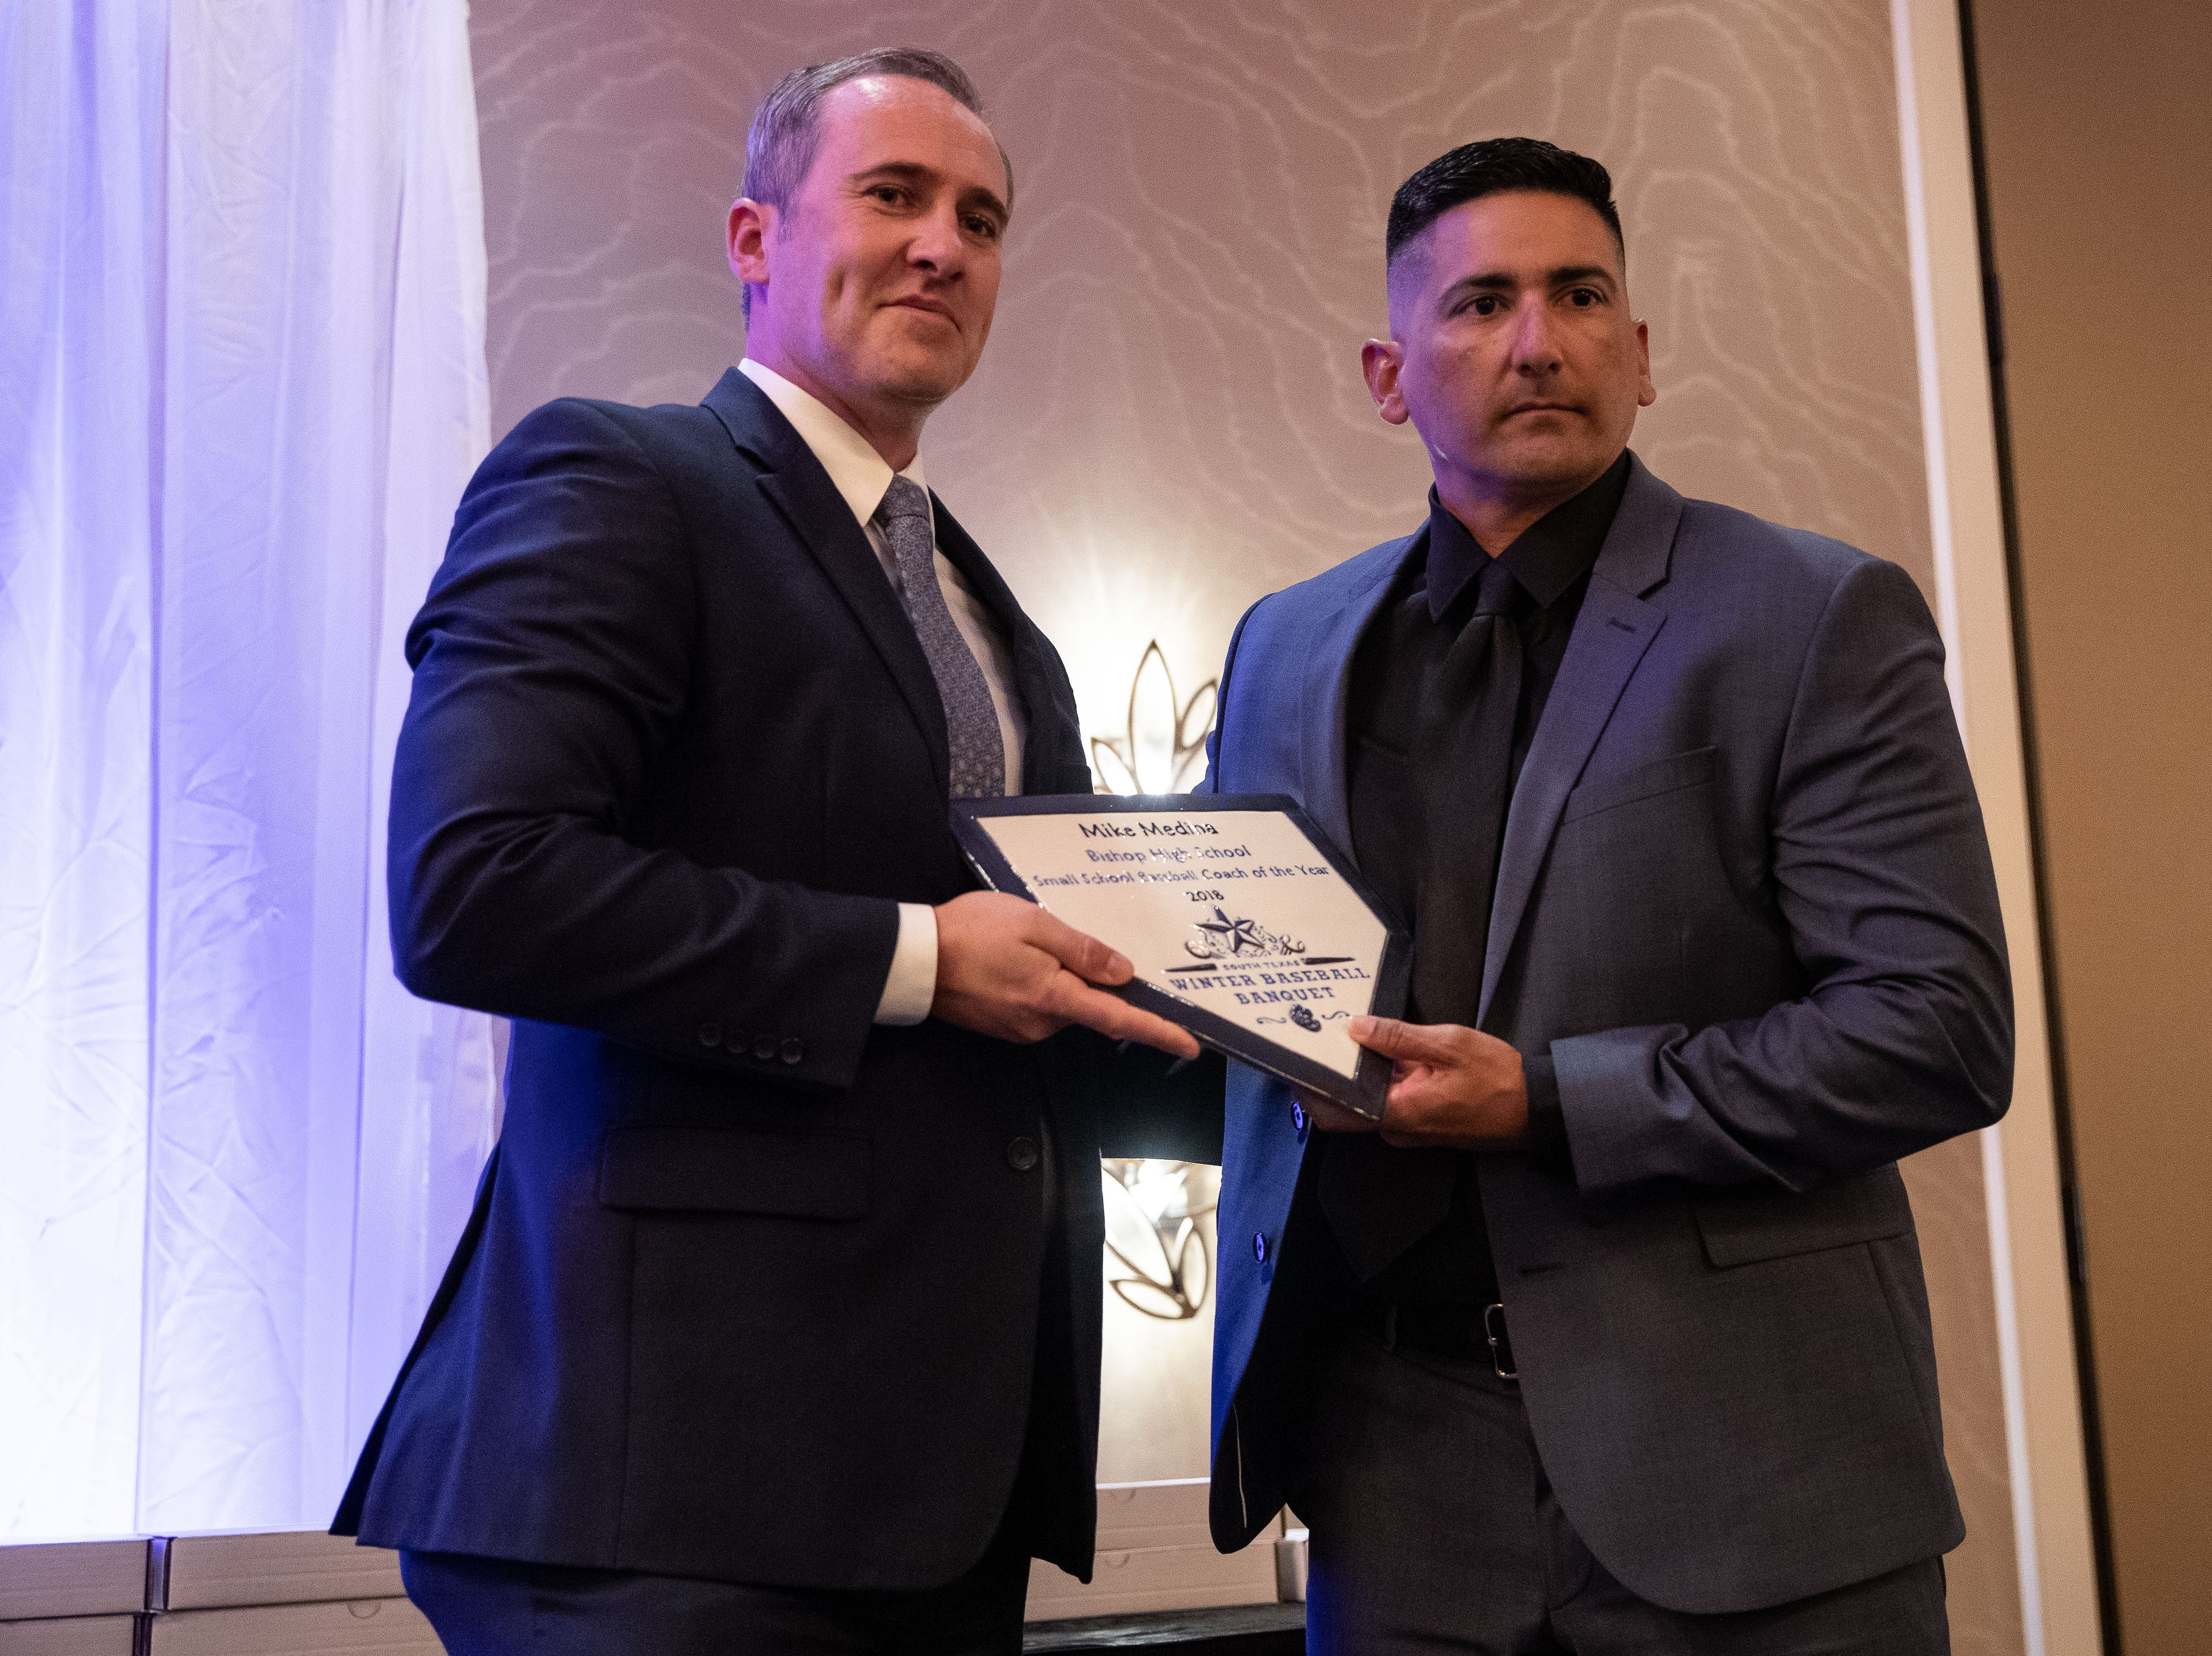 Bishop's Mike Medina receives the small school baseball coach of the year award during the Hooks South Texas Baseball Banquet at the Omni Hotel on Thursday, Jan. 24, 2019.